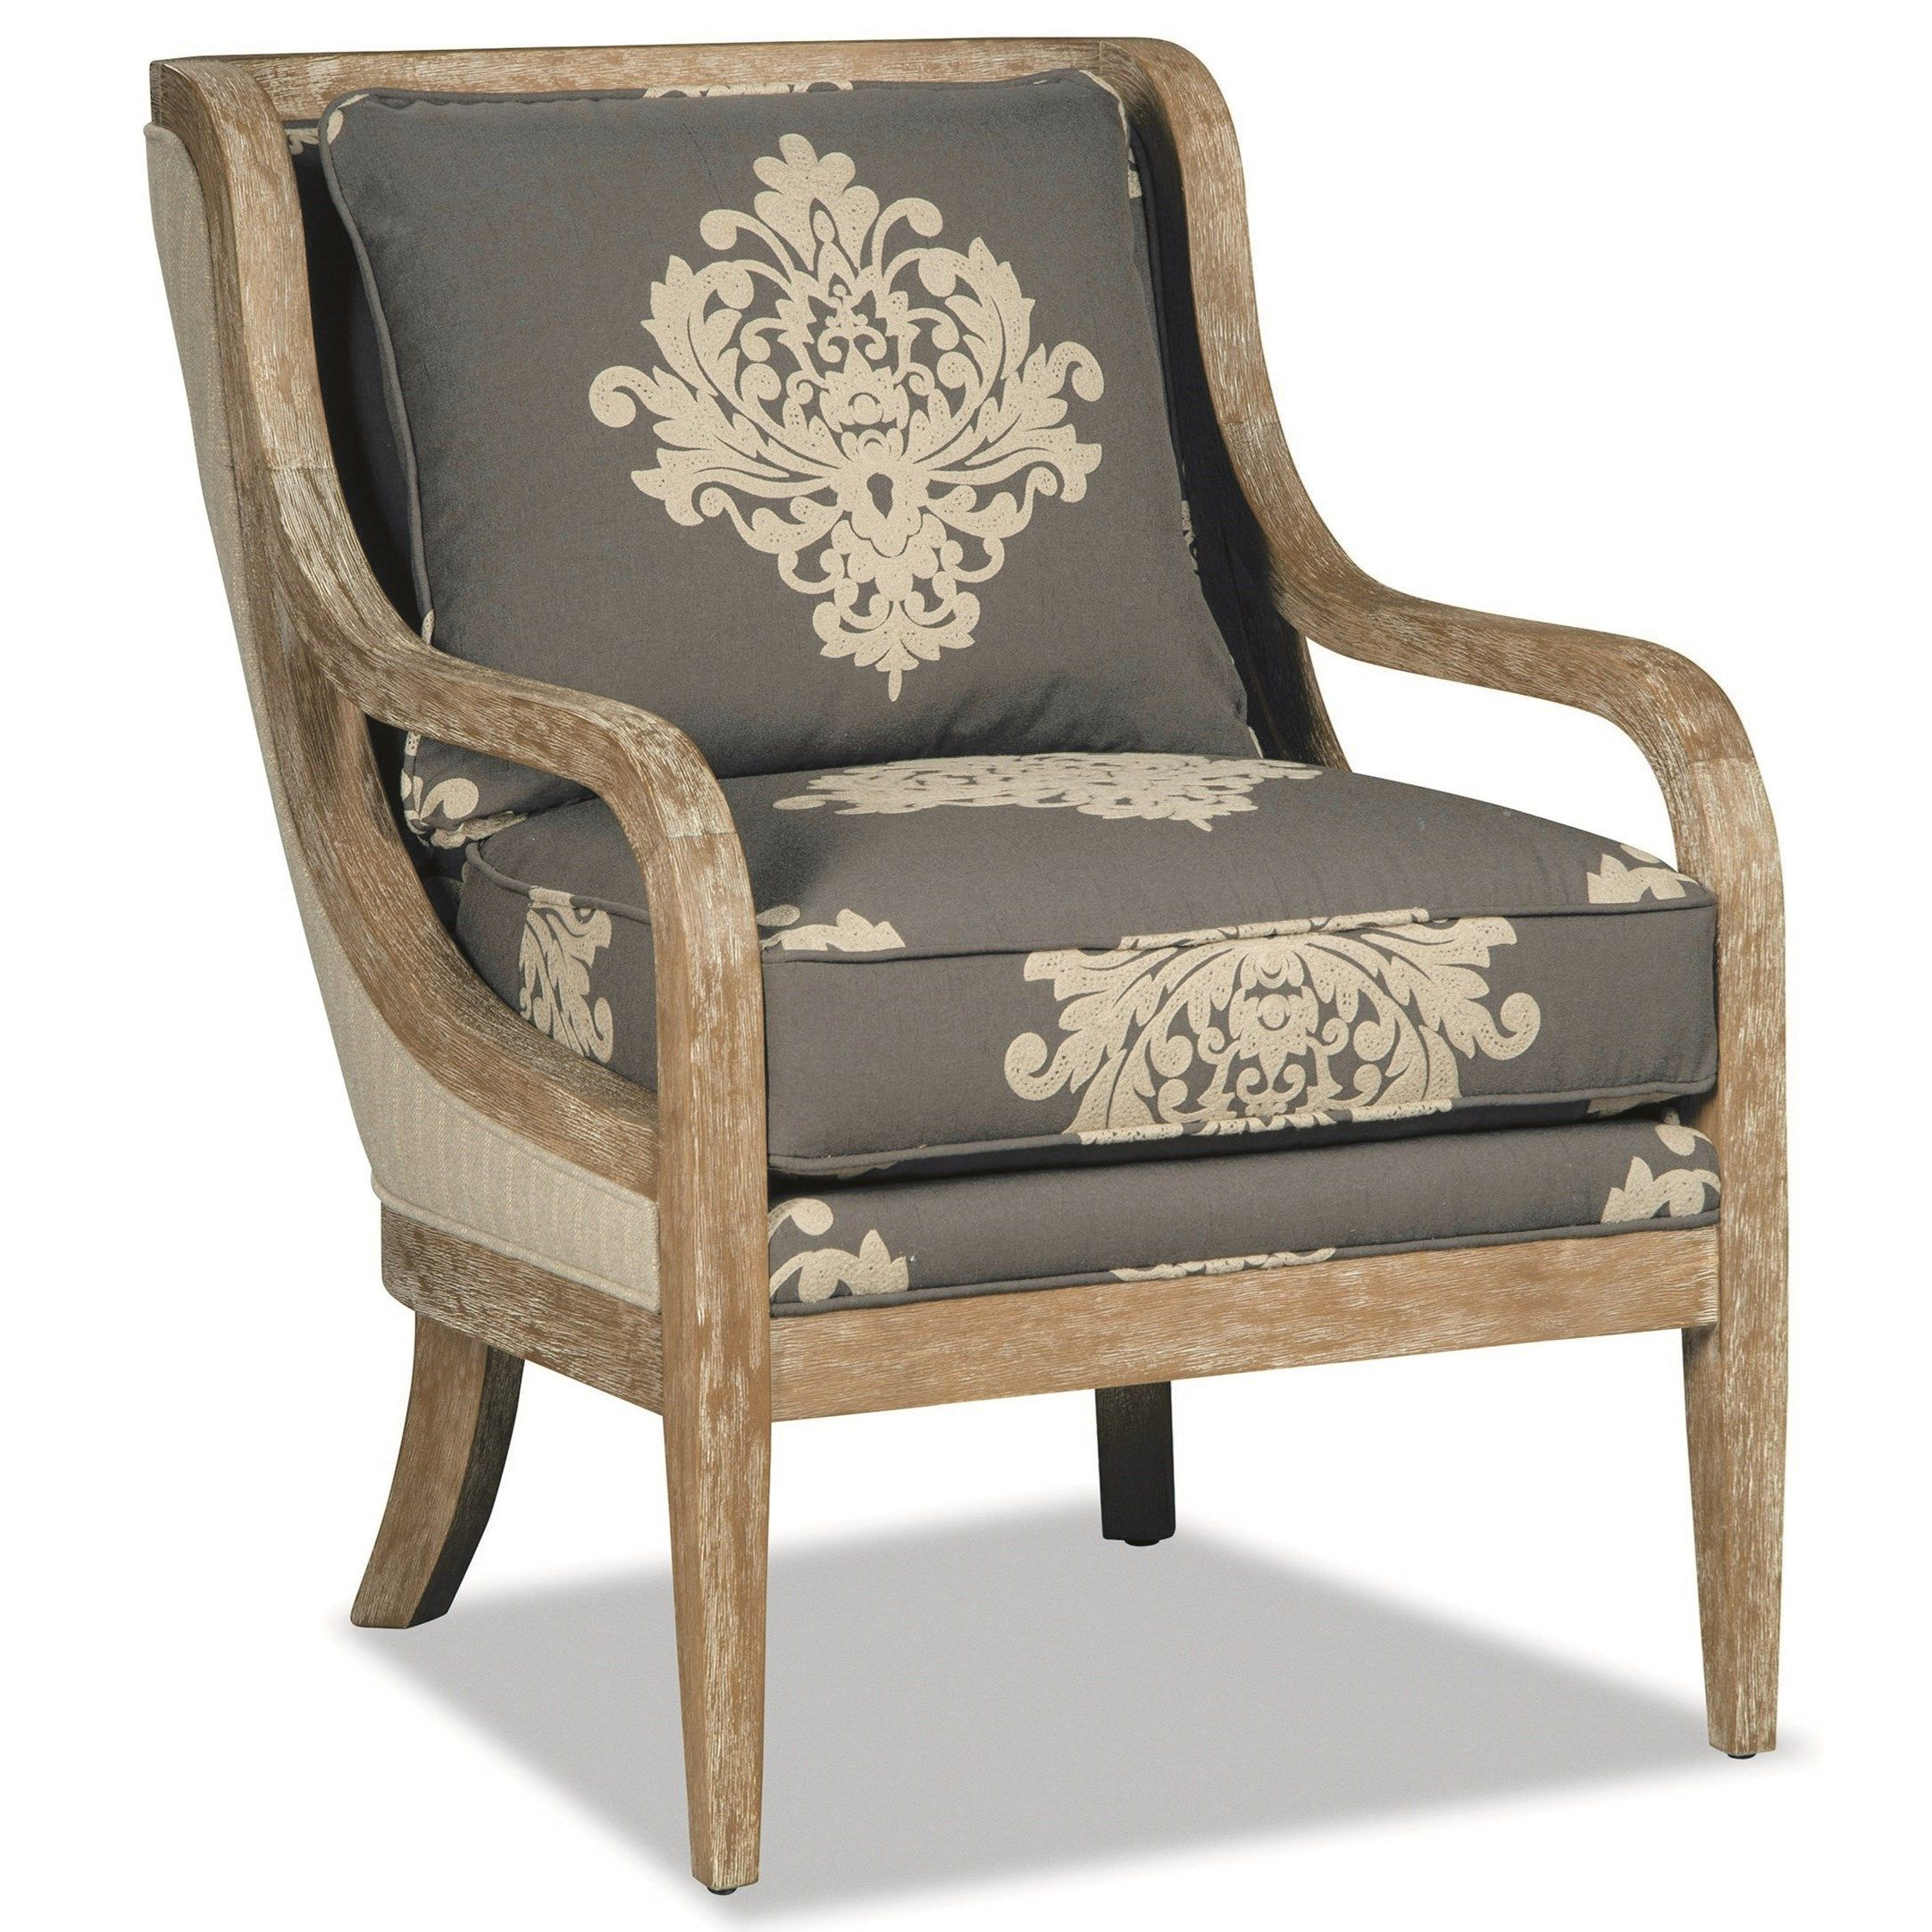 067410067510 Accent Chair Weathered Oak by Craftmaster